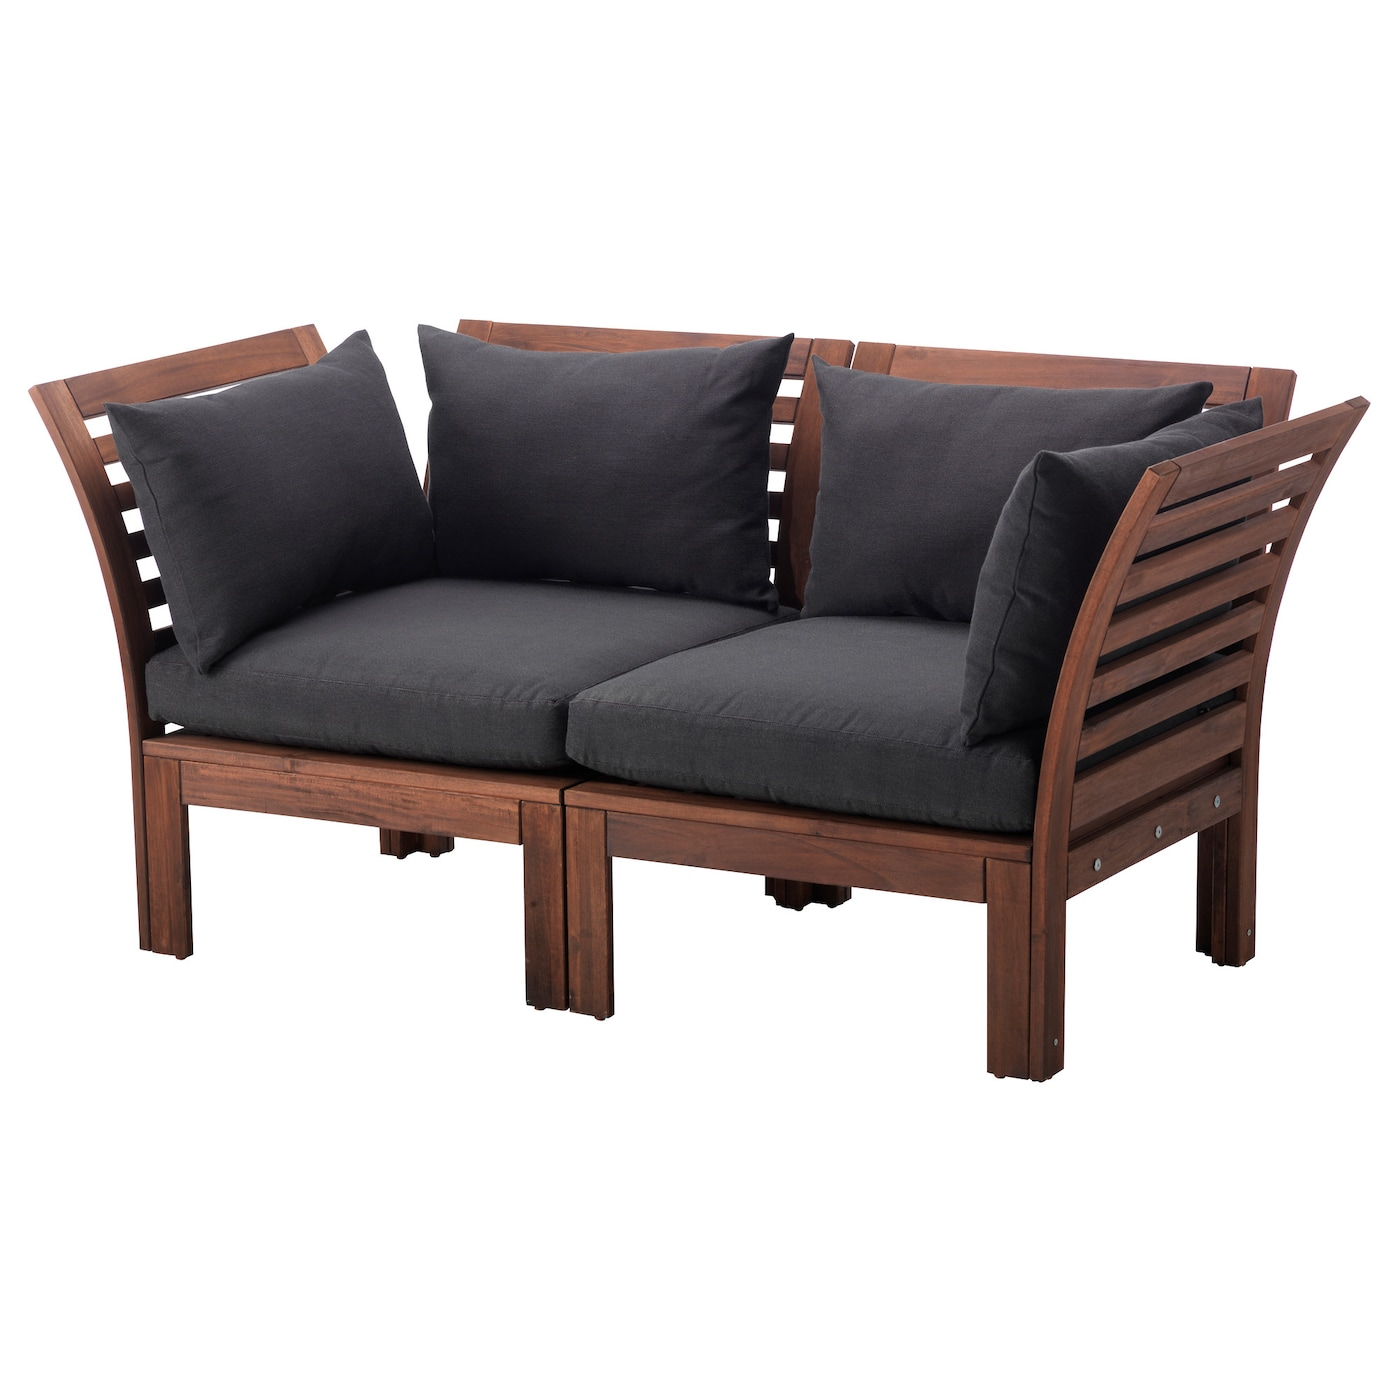 pplar 2 seat sofa outdoor brown stained h ll black 160x80x73 cm ikea. Black Bedroom Furniture Sets. Home Design Ideas